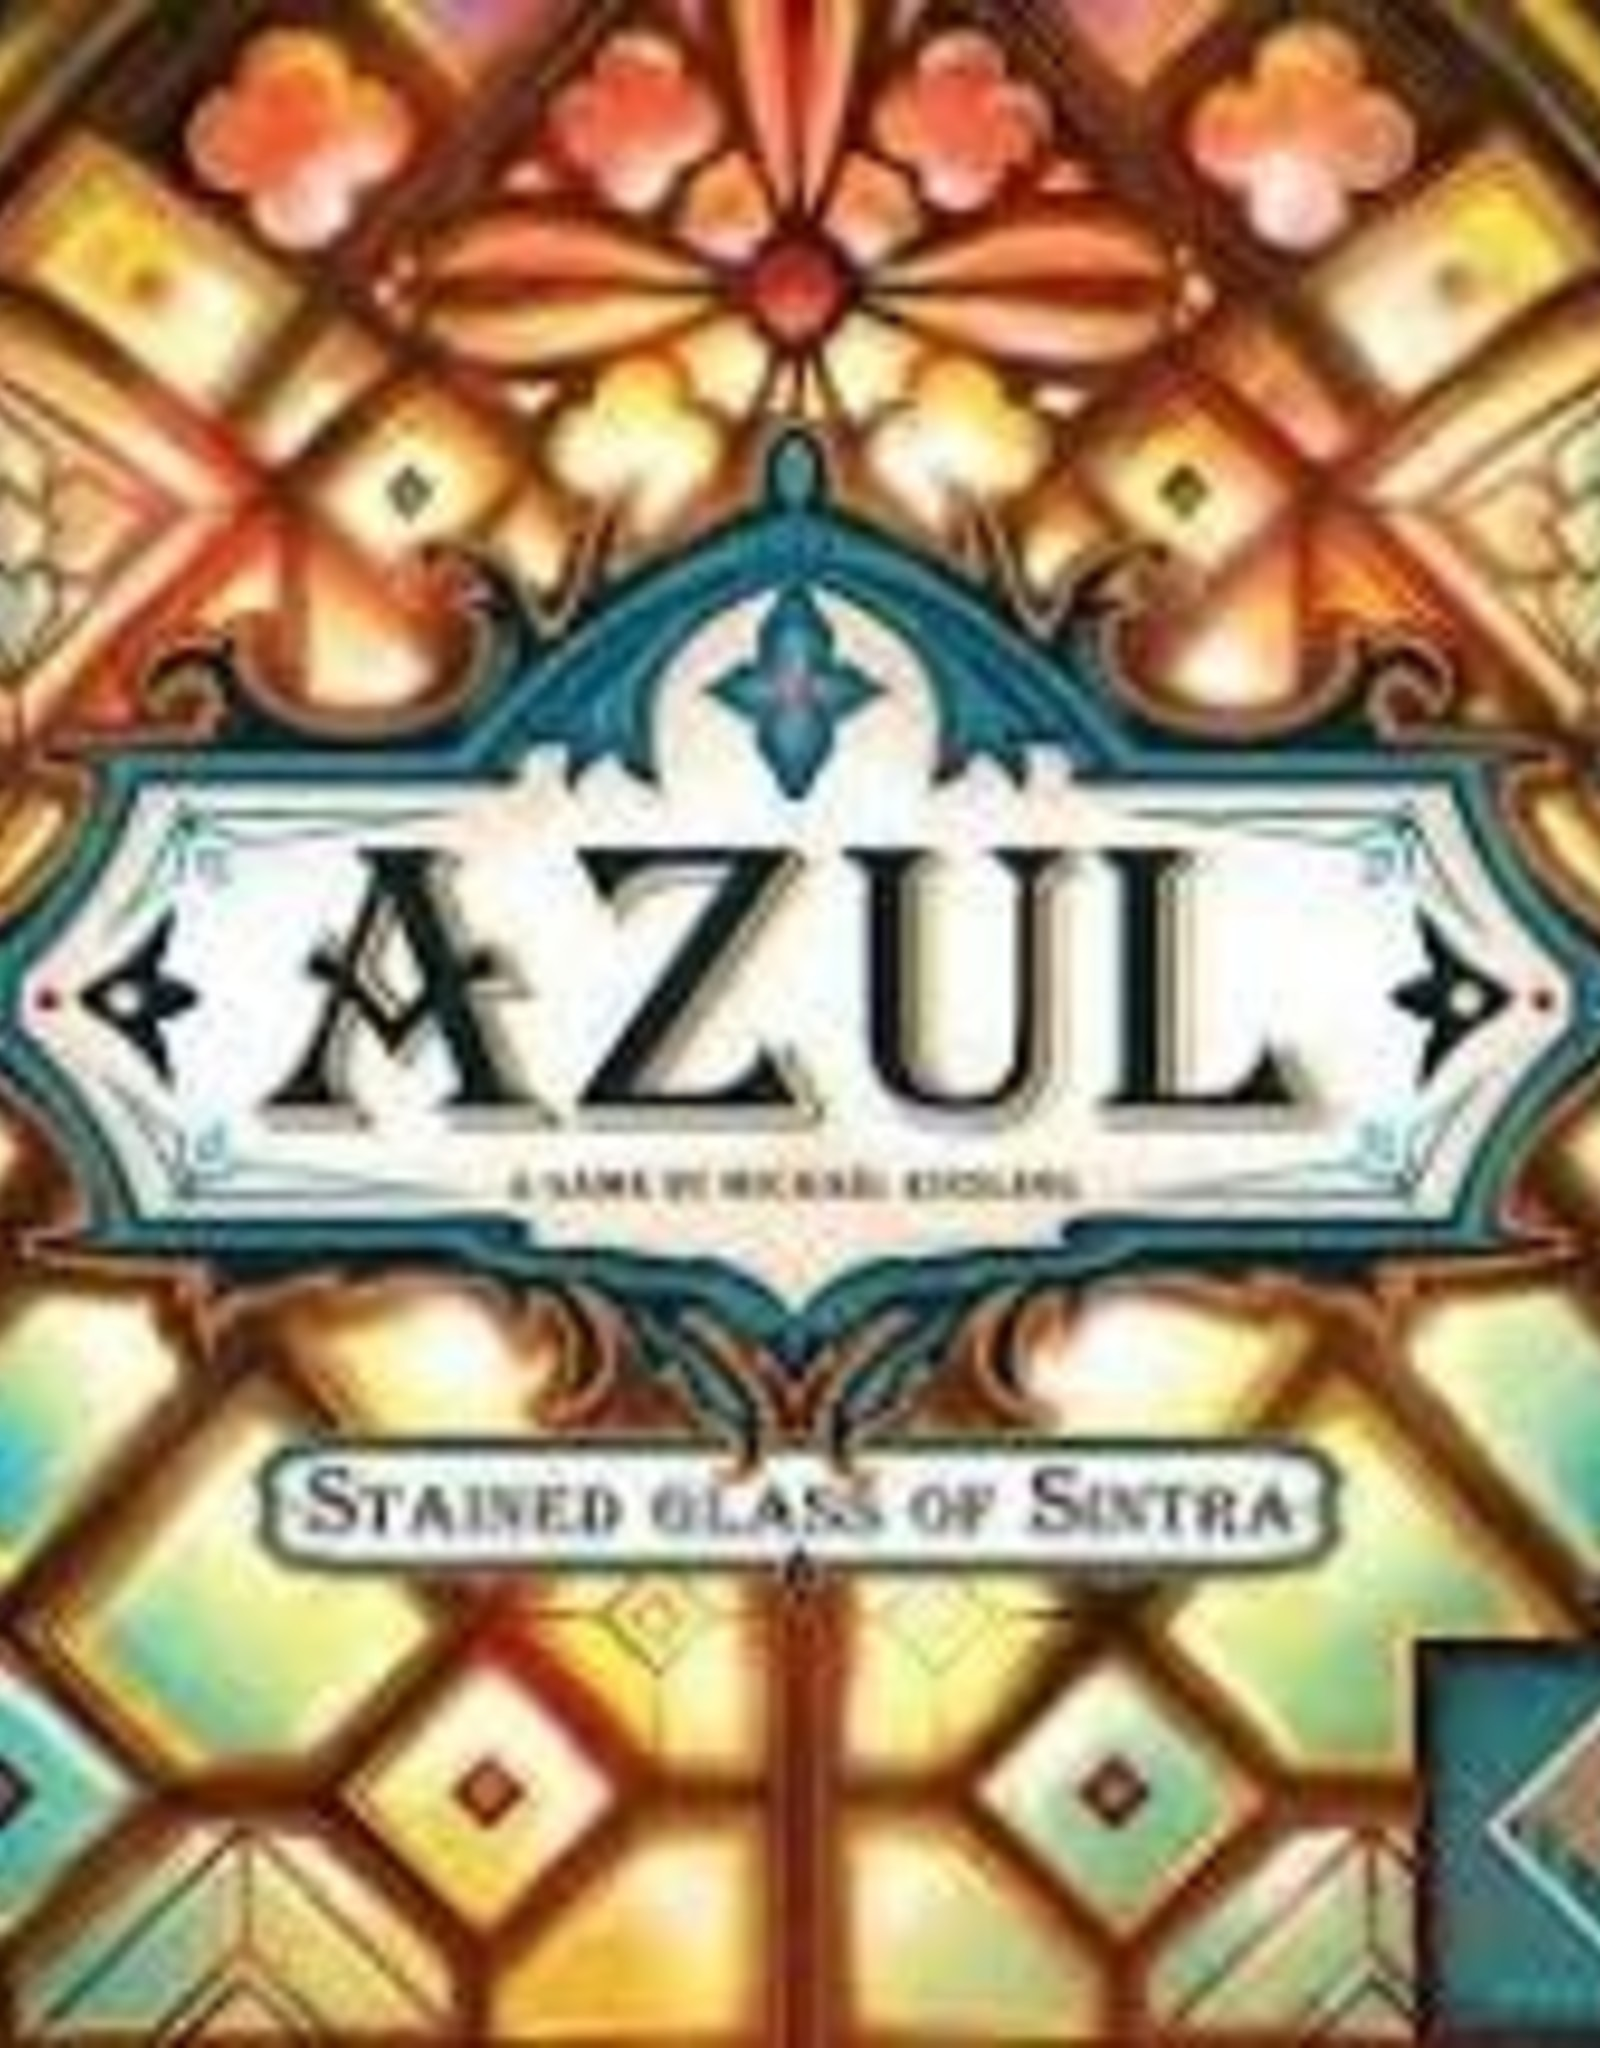 RENTAL - Azul: Stained Glass 2 lb 8.6 oz